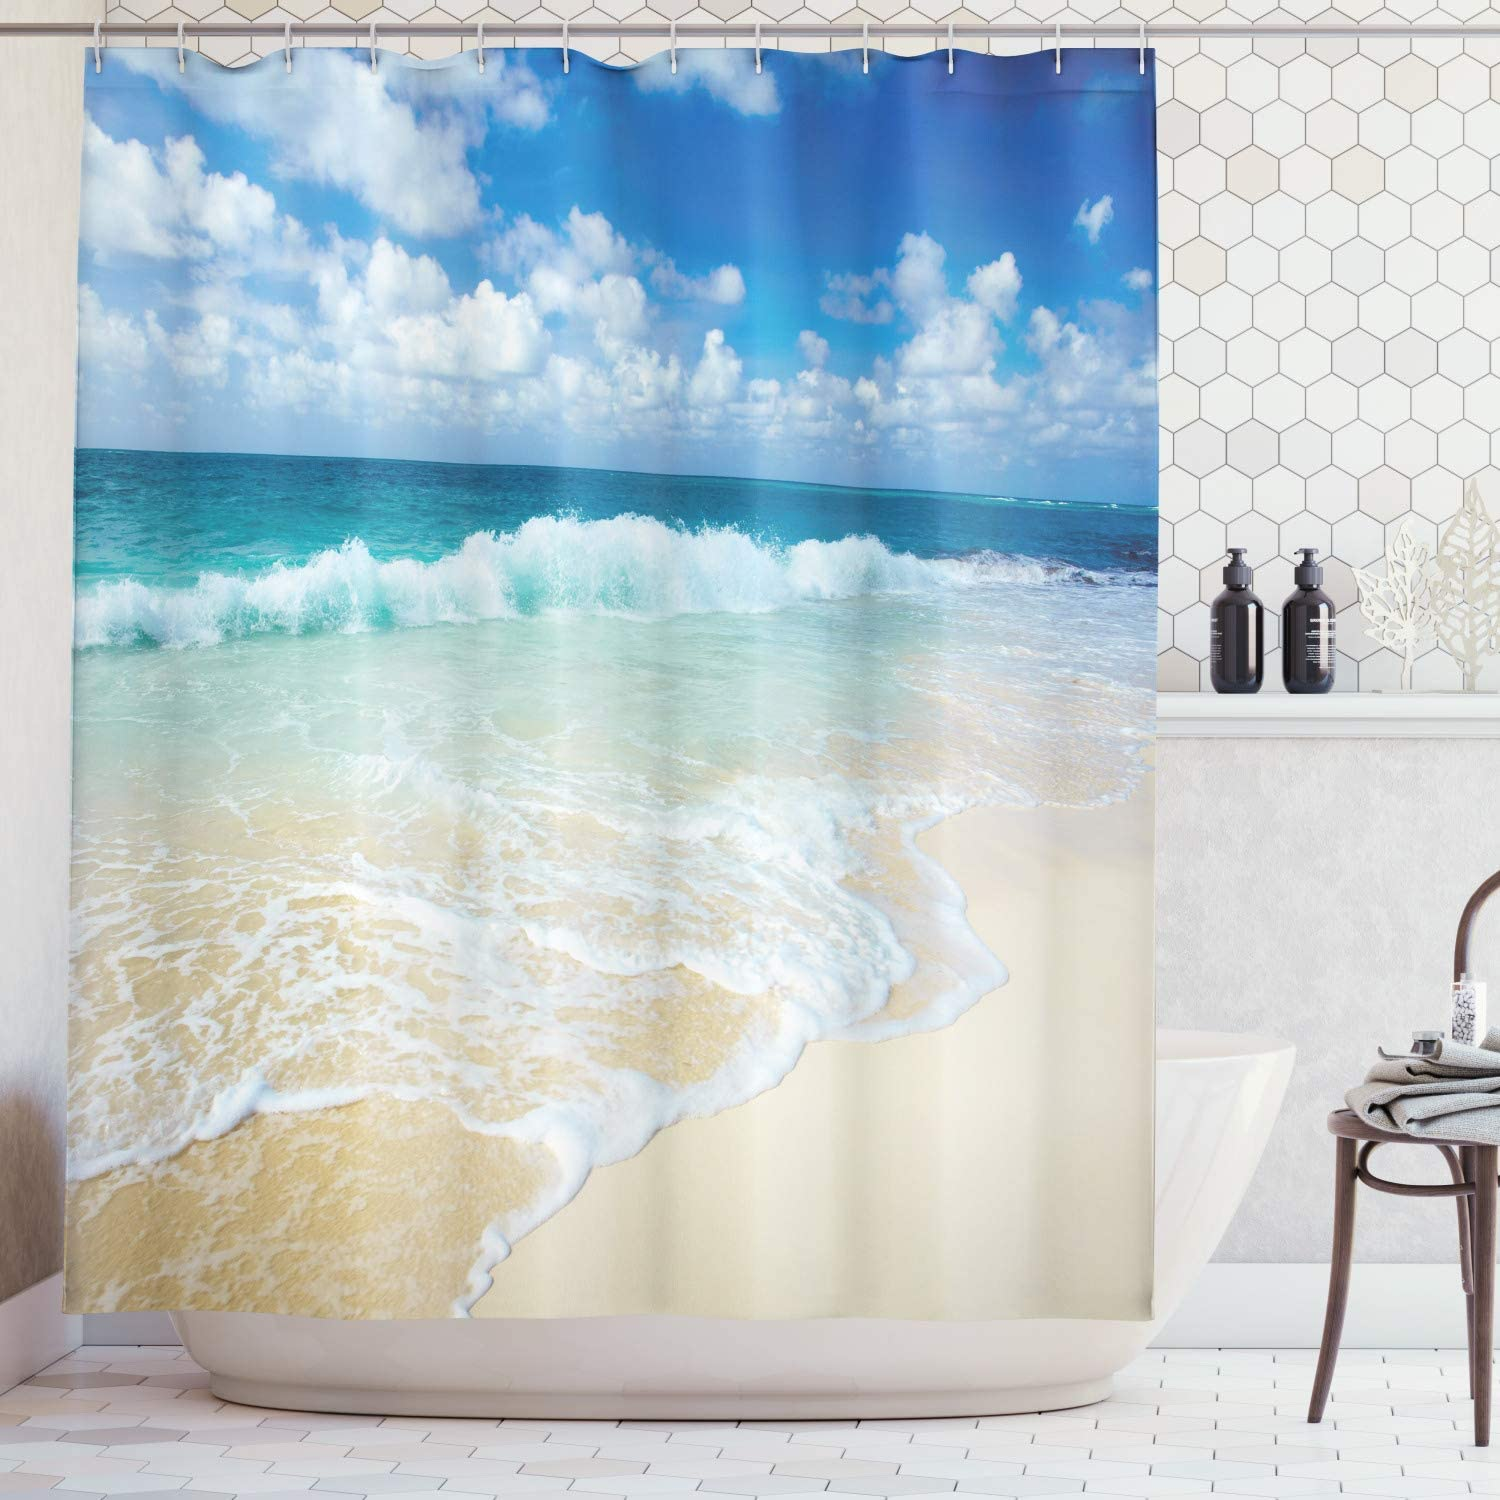 Max 55% OFF Lunarable Wave Shower Curtain, Beach with Foamy Waves ...